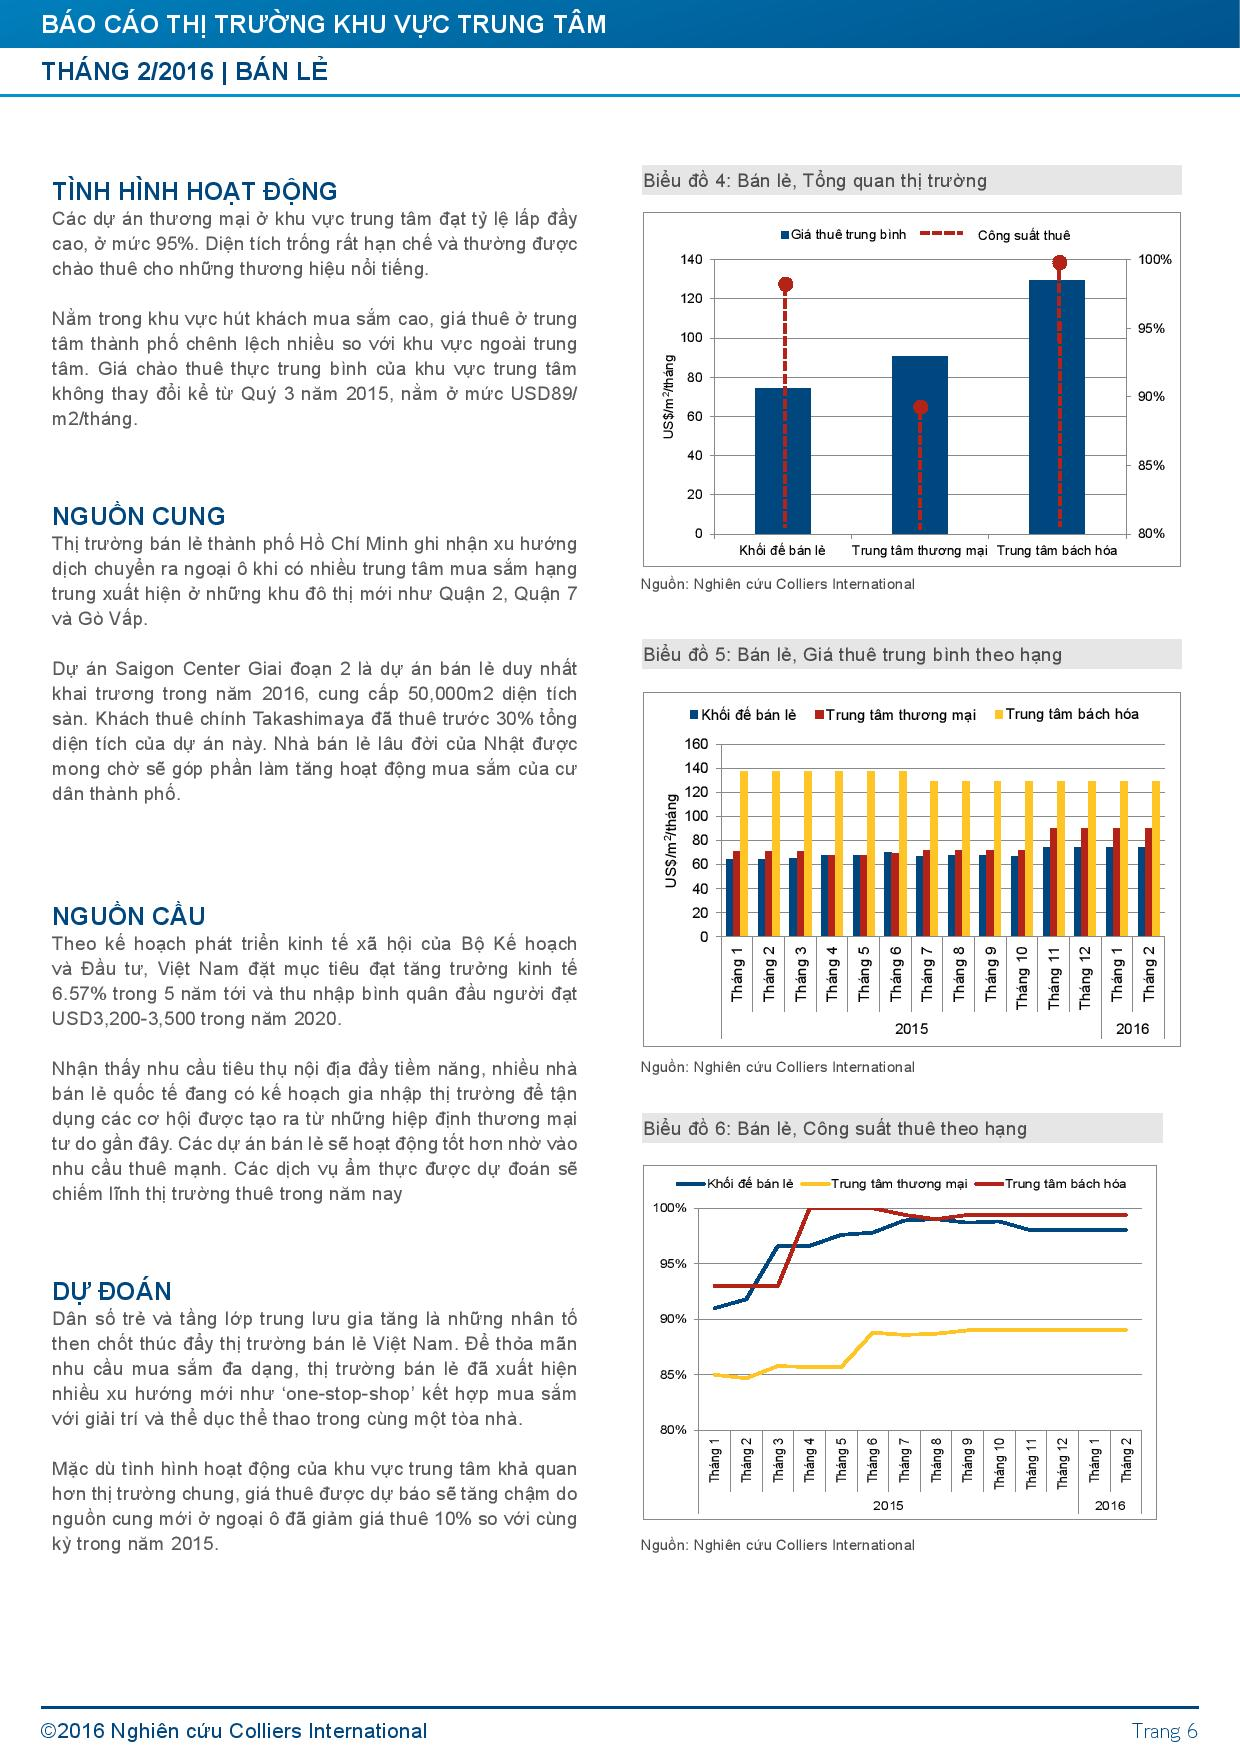 Colliers_HCMC_CBD report_Feb 2016_VIE-page-006